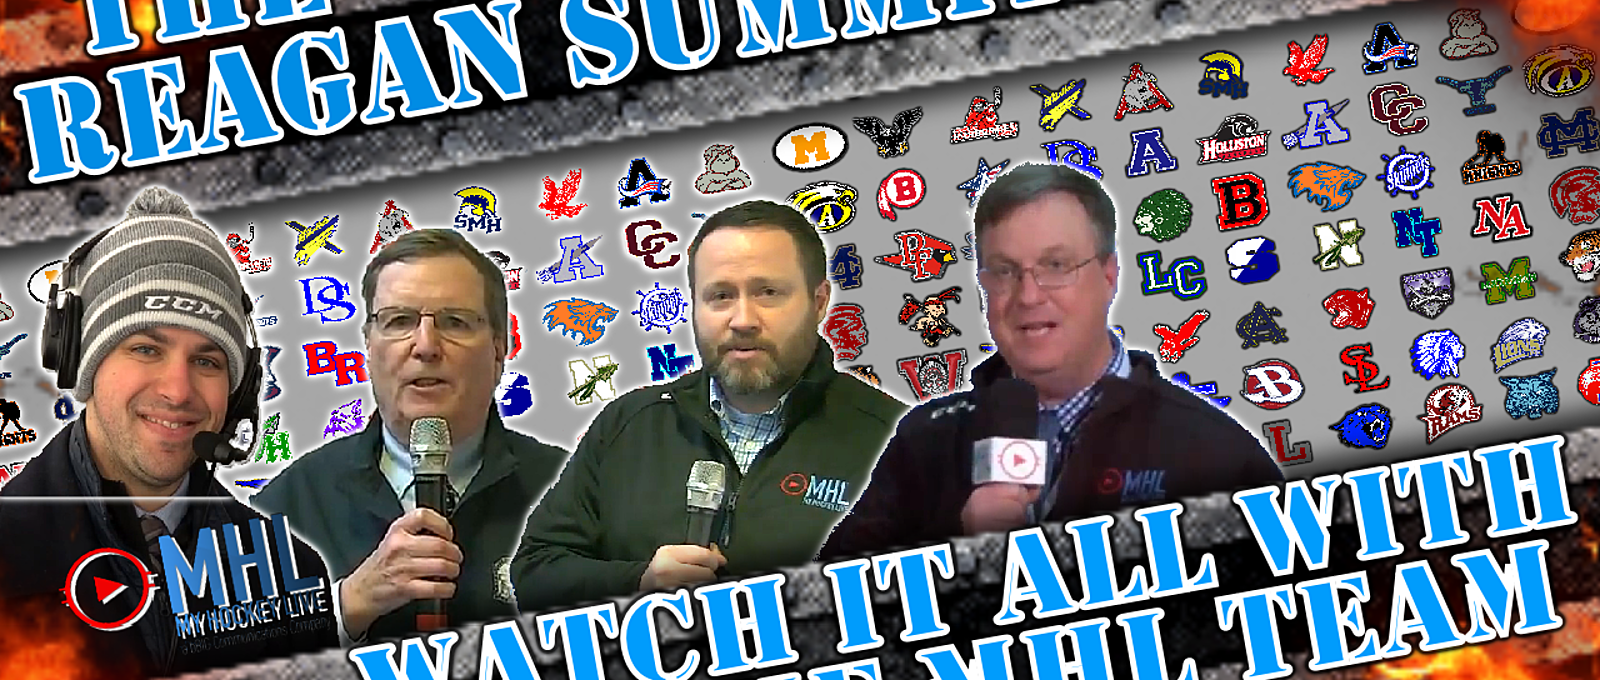 12th Annual Garrett Reagan Summit Pairings